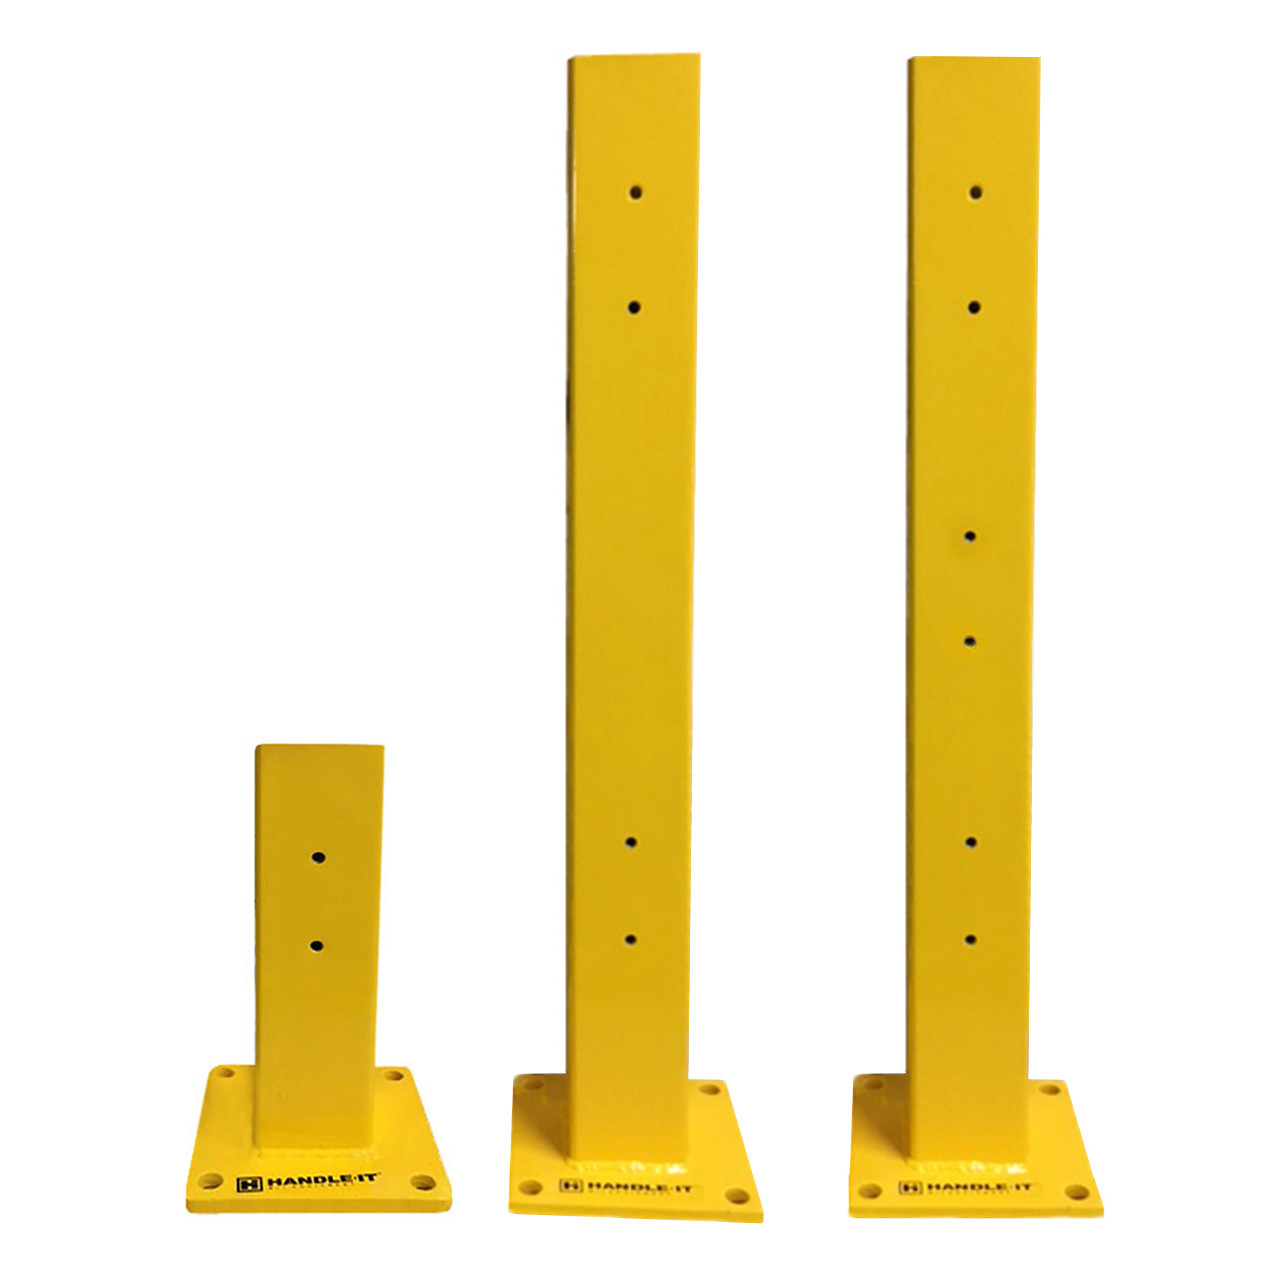 Two column heights to choose from with the option of one to three rails